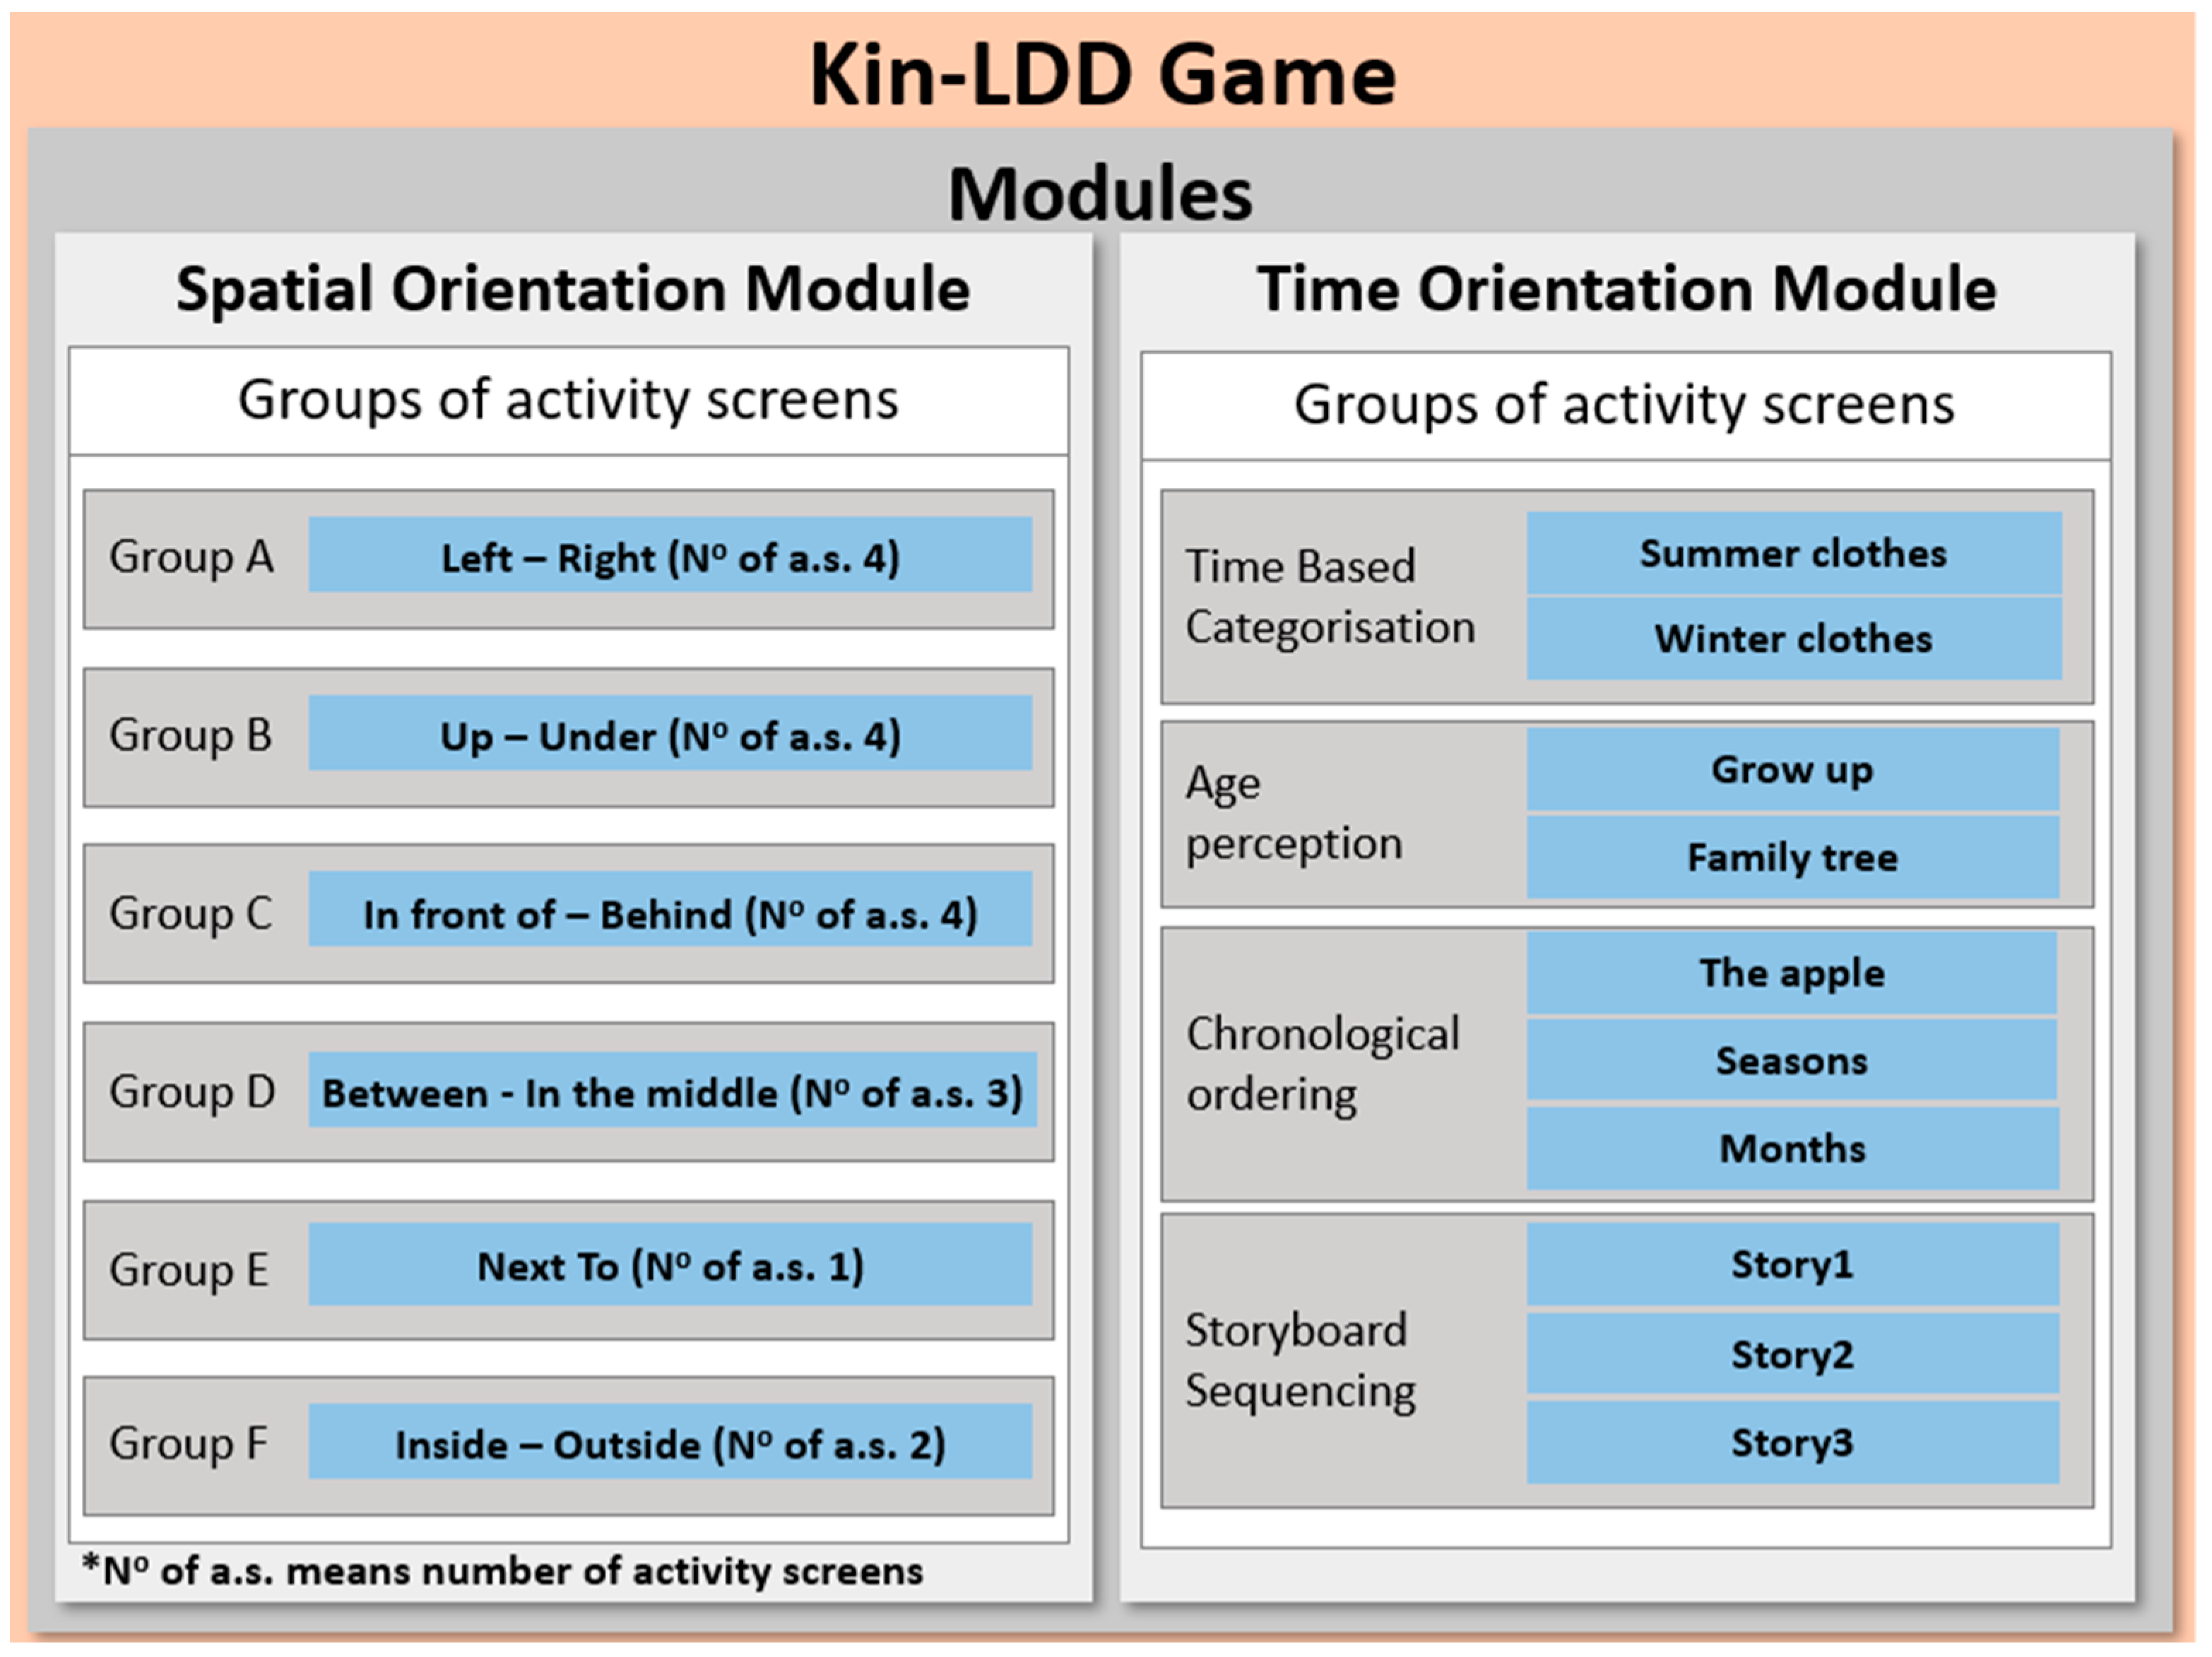 Mti Free Full Text Let S Play A Game Kin Ldd A Tool For Assisting In The Diagnosis Of Children With Learning Difficulties Html